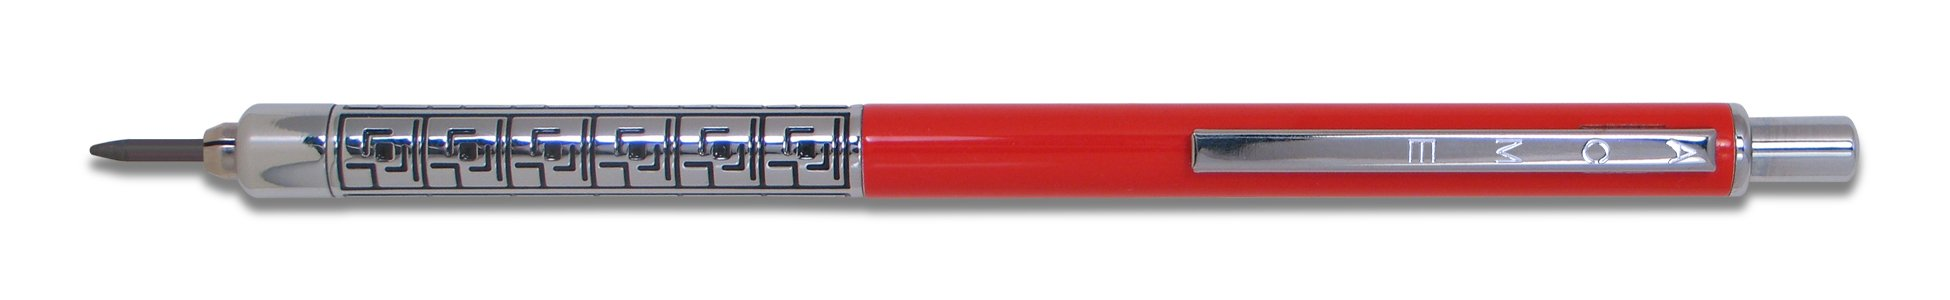 ACME Studios Frank Lloyd Wright Architect's Mechanical Pencil (PW53/MPCL)